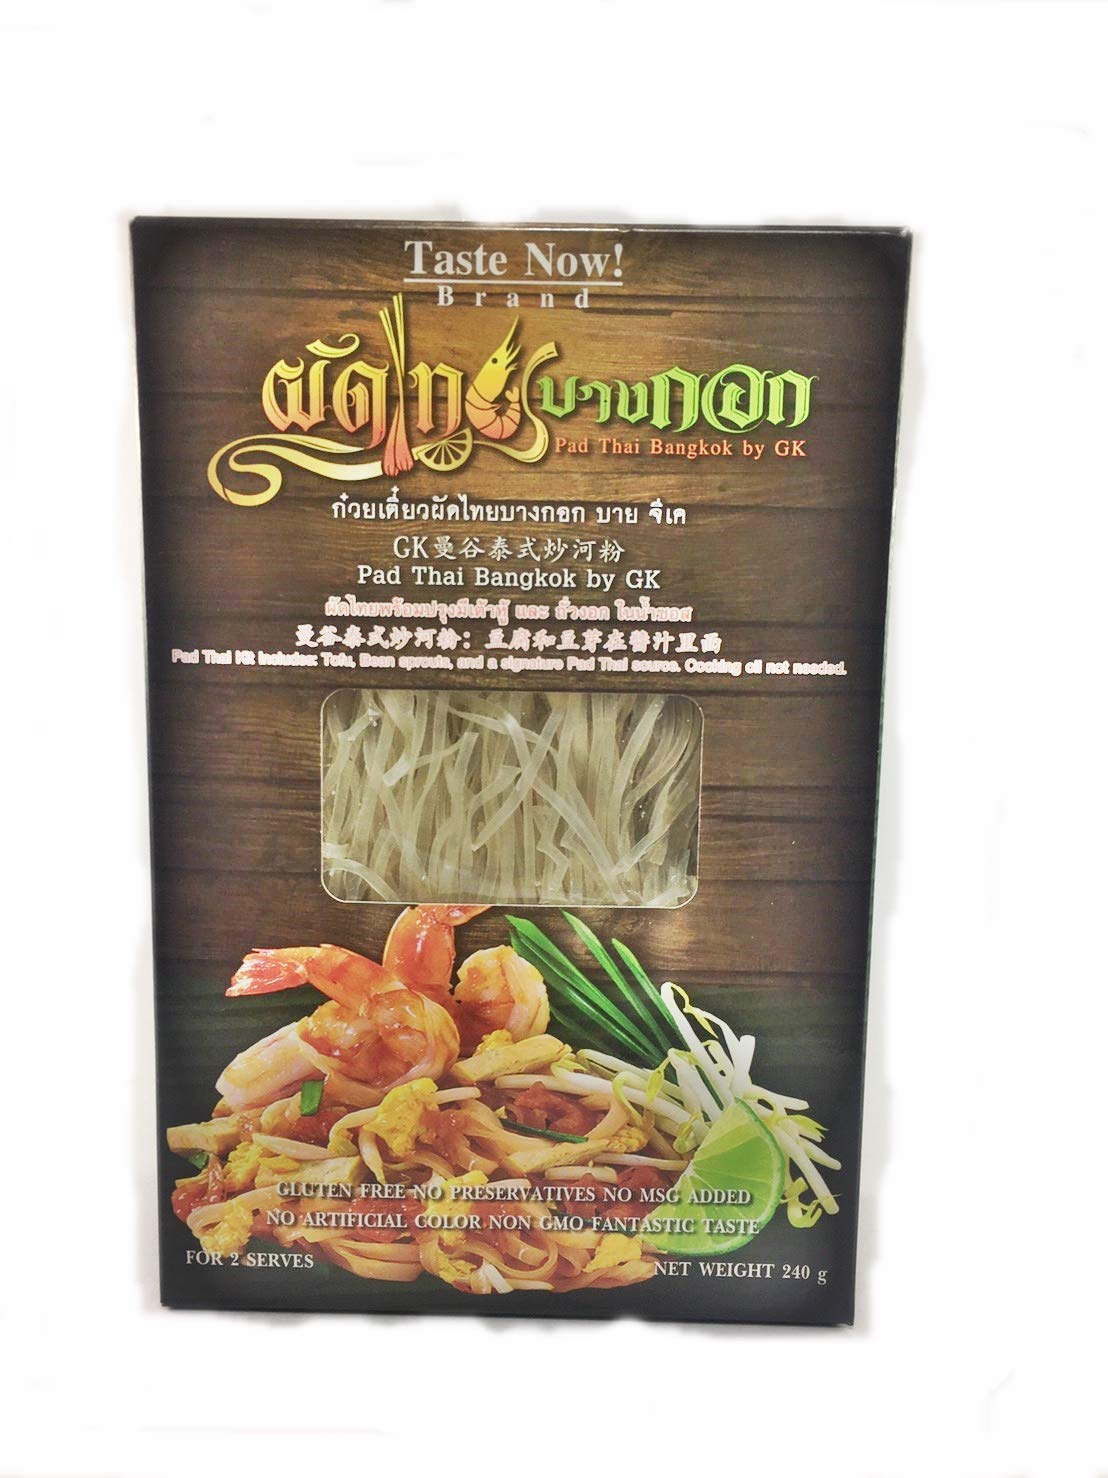 Taste Now! Thai Cuisine Healthy food Amazing Pad Thai Kit include Tofu and Bean sprout in Signature sauce Gluten fee